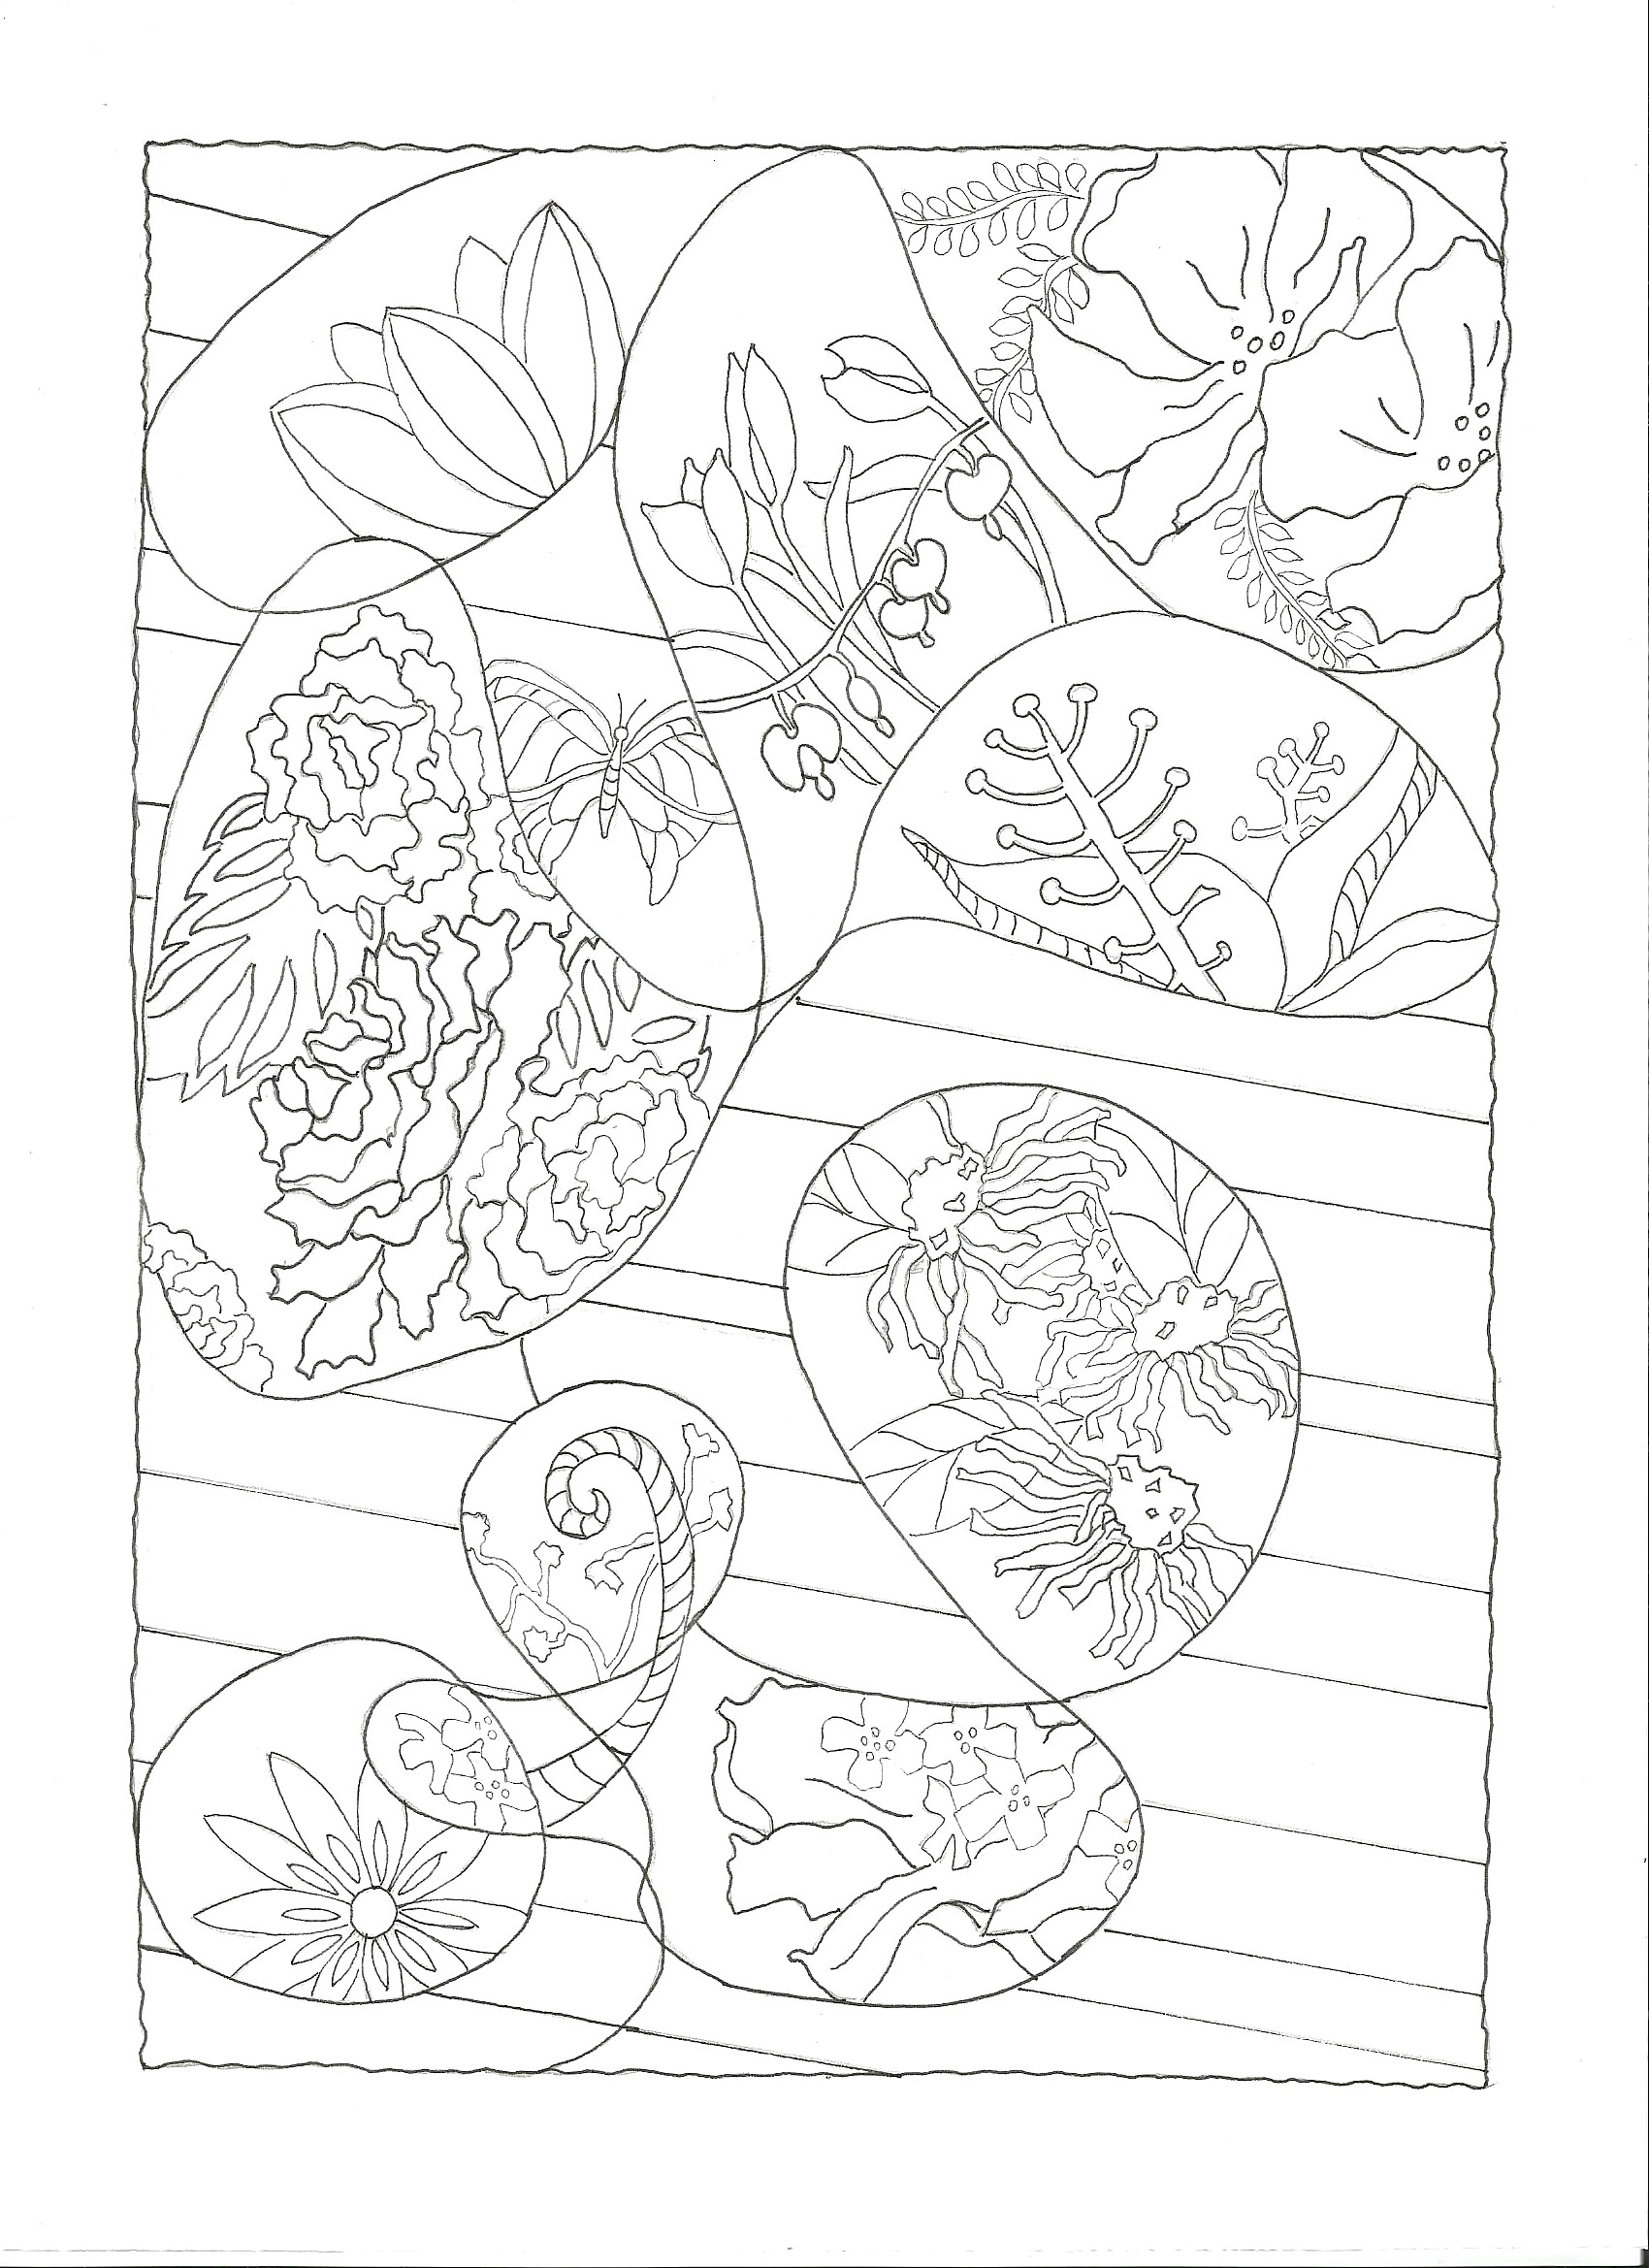 Exclusive Coloring Pages available on Thursday by signing up to receive them in your inbox! Birds Eye View www.sandykayemoss.com